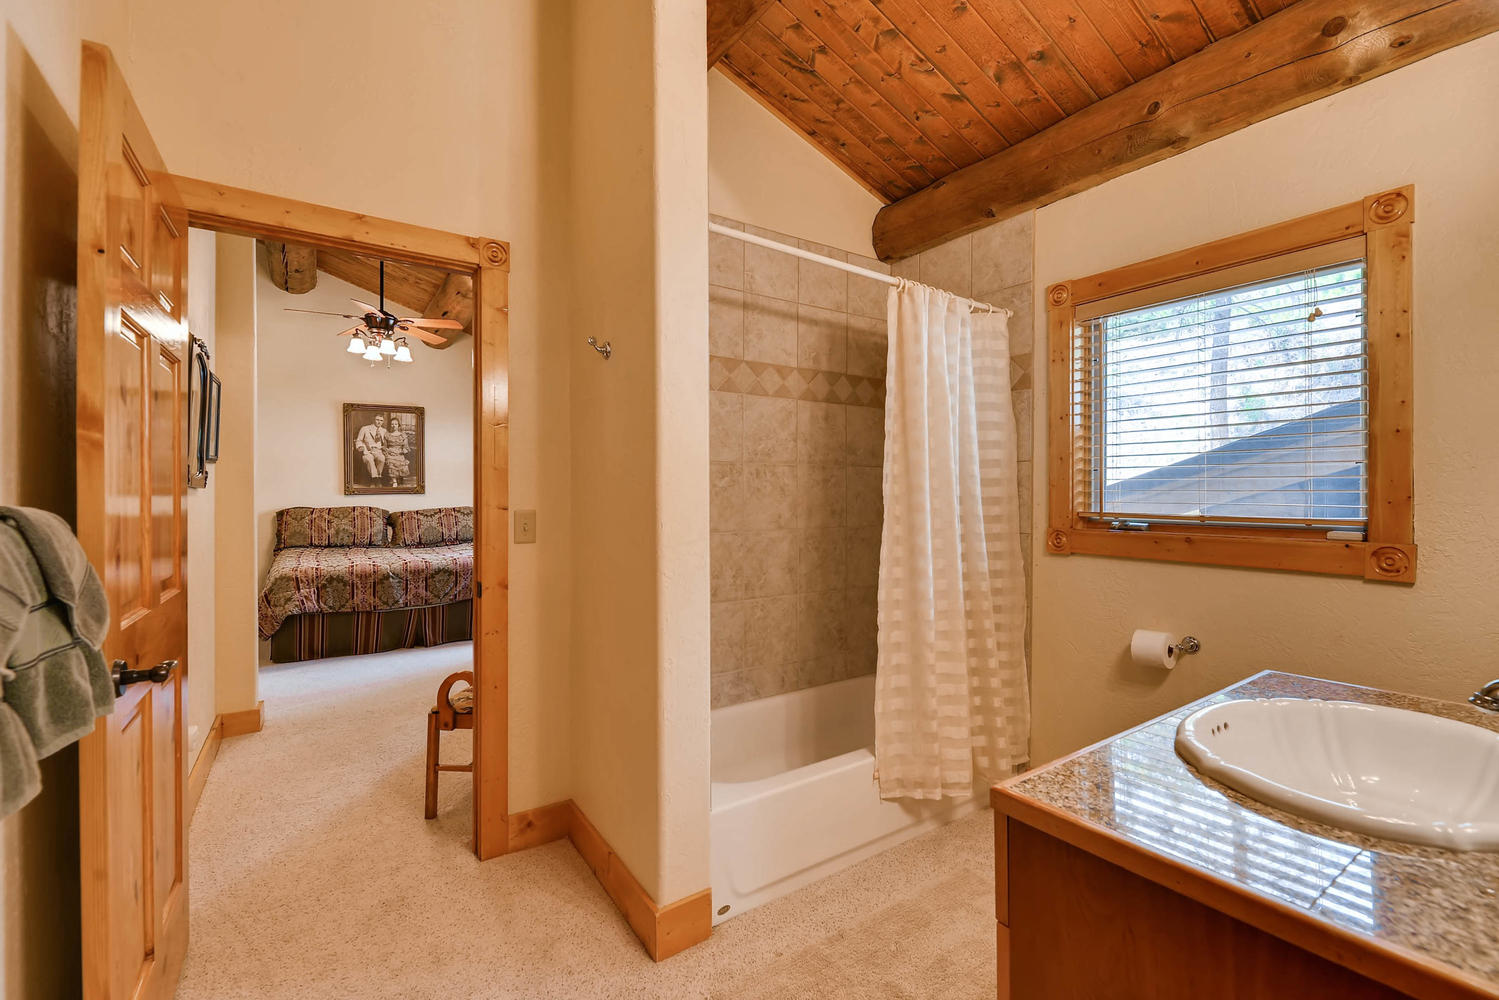 Upper level bathroom has a shower/tub combo.